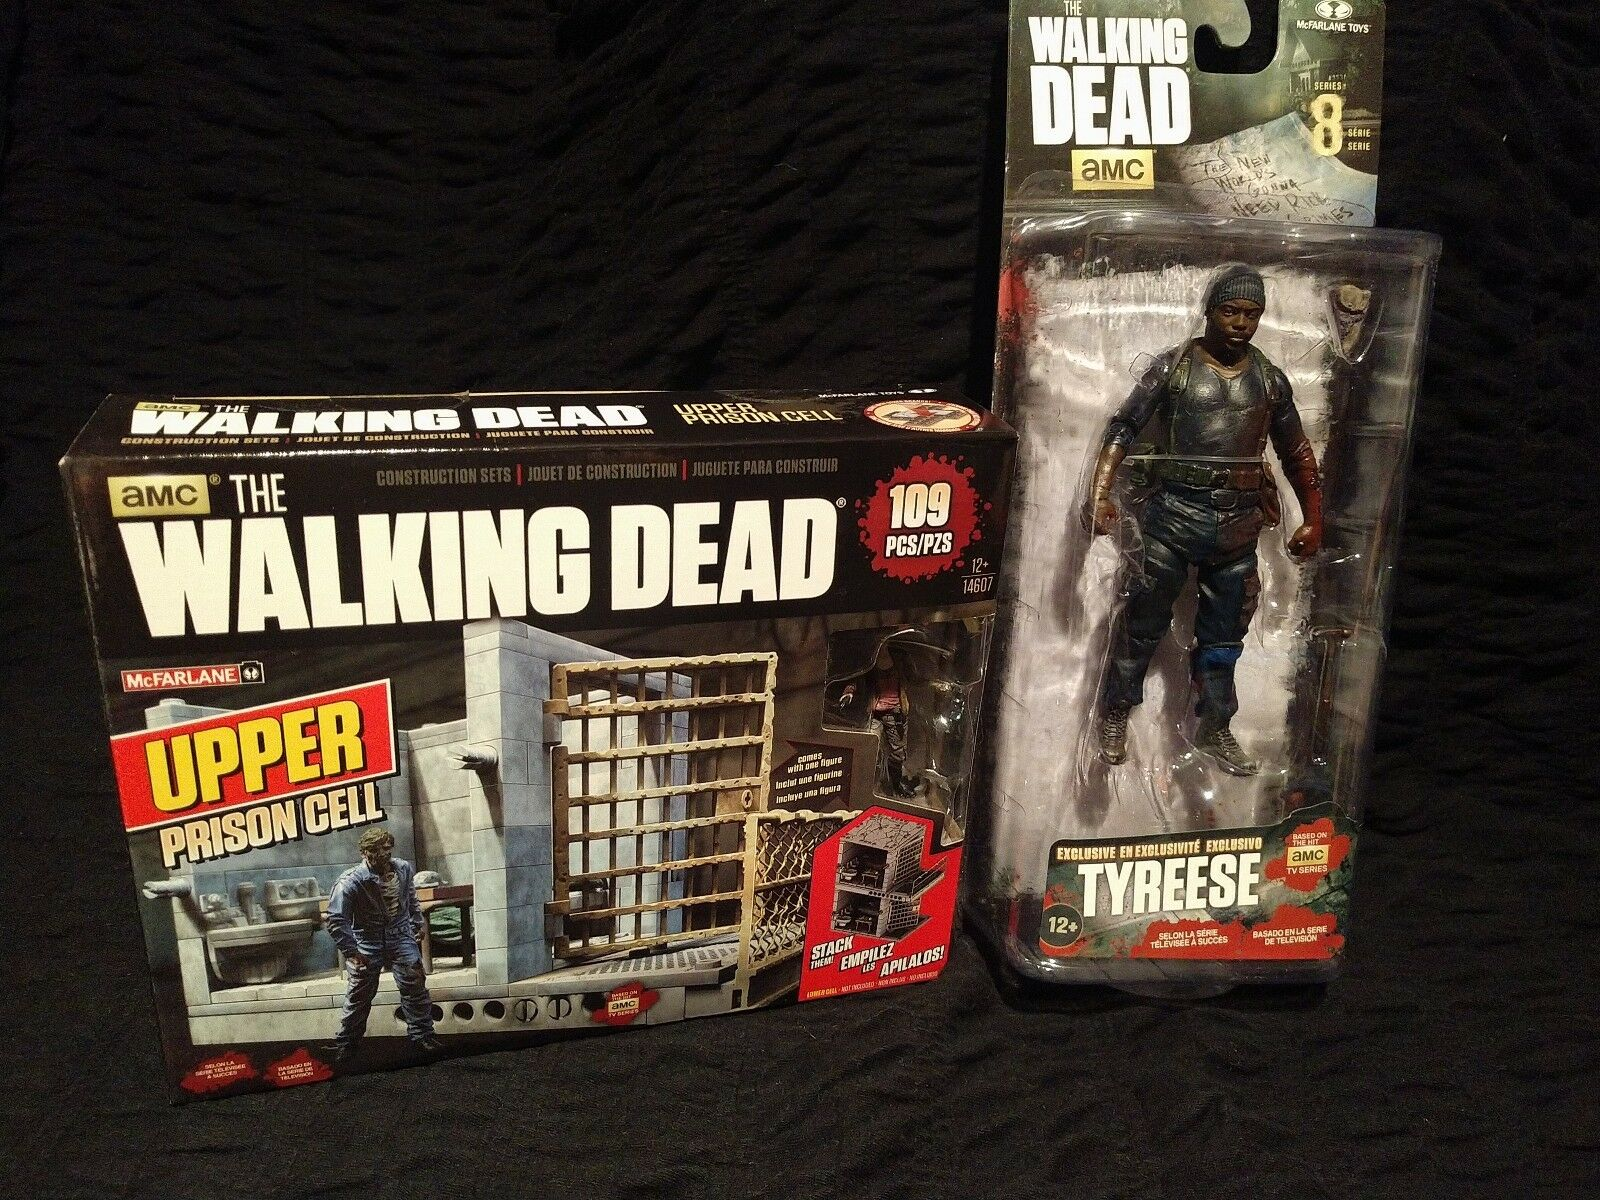 NEW Walking Dead Tyreese Action Figure Target Exclusive,Upper Prison Cell Set